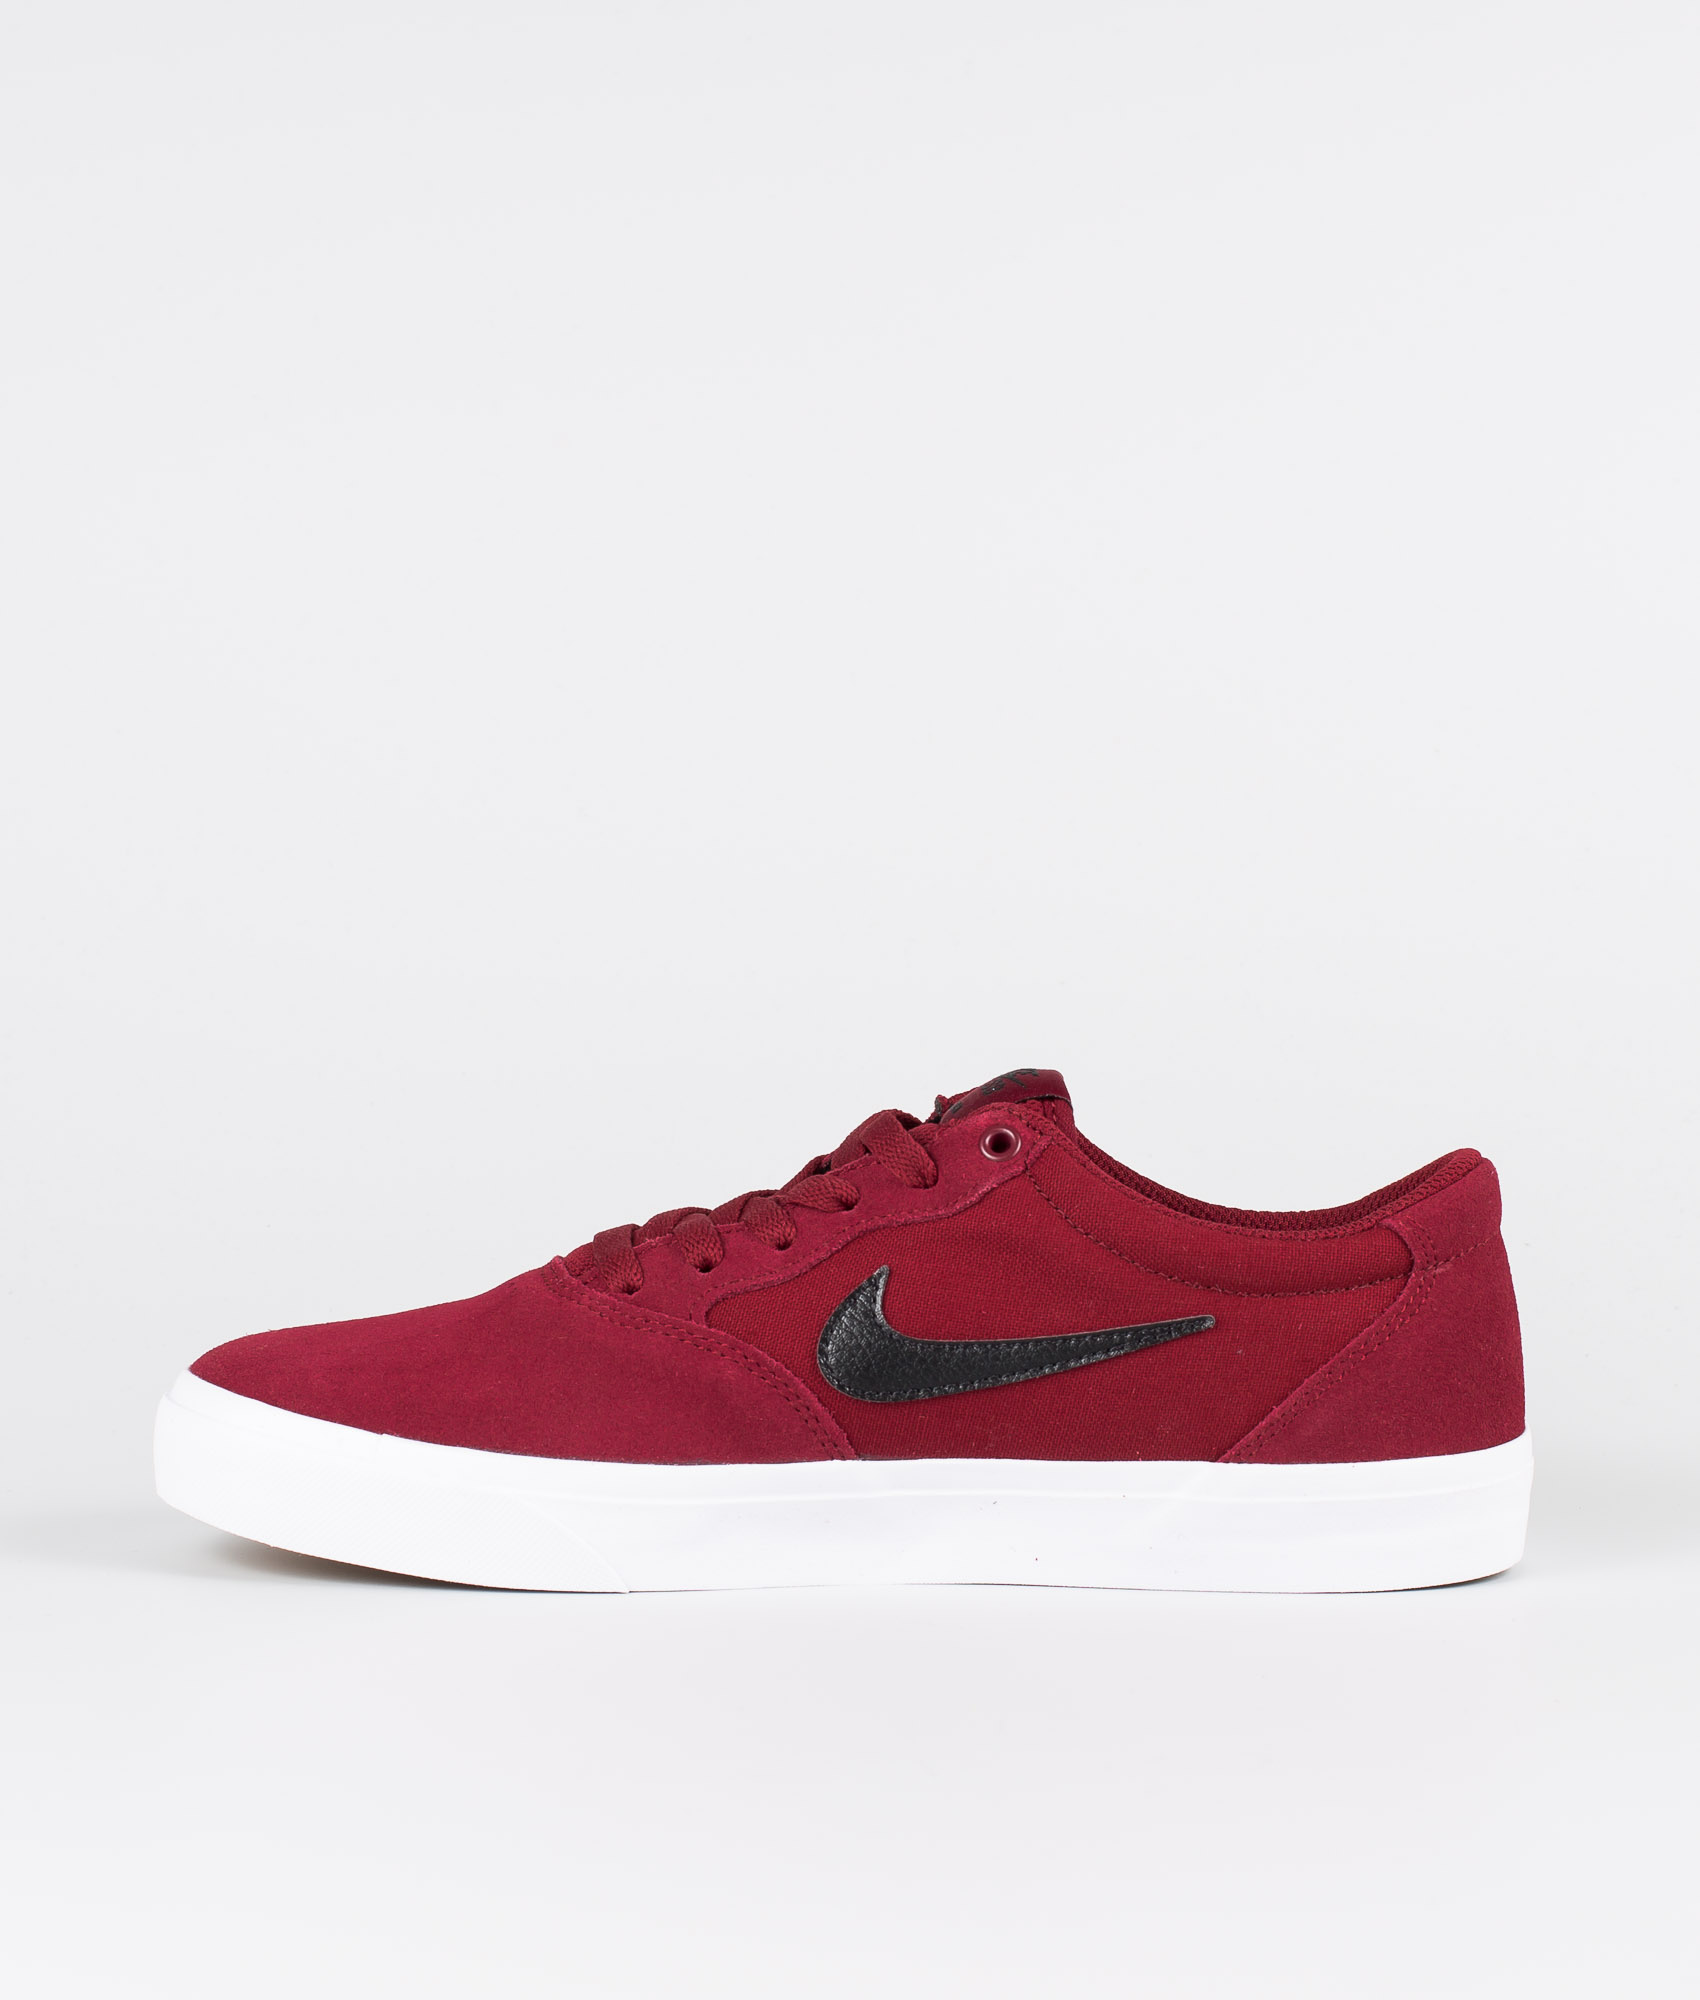 Nike SB Chron SLR Schuhe Team RedBlack Team Red Gum Light Brown